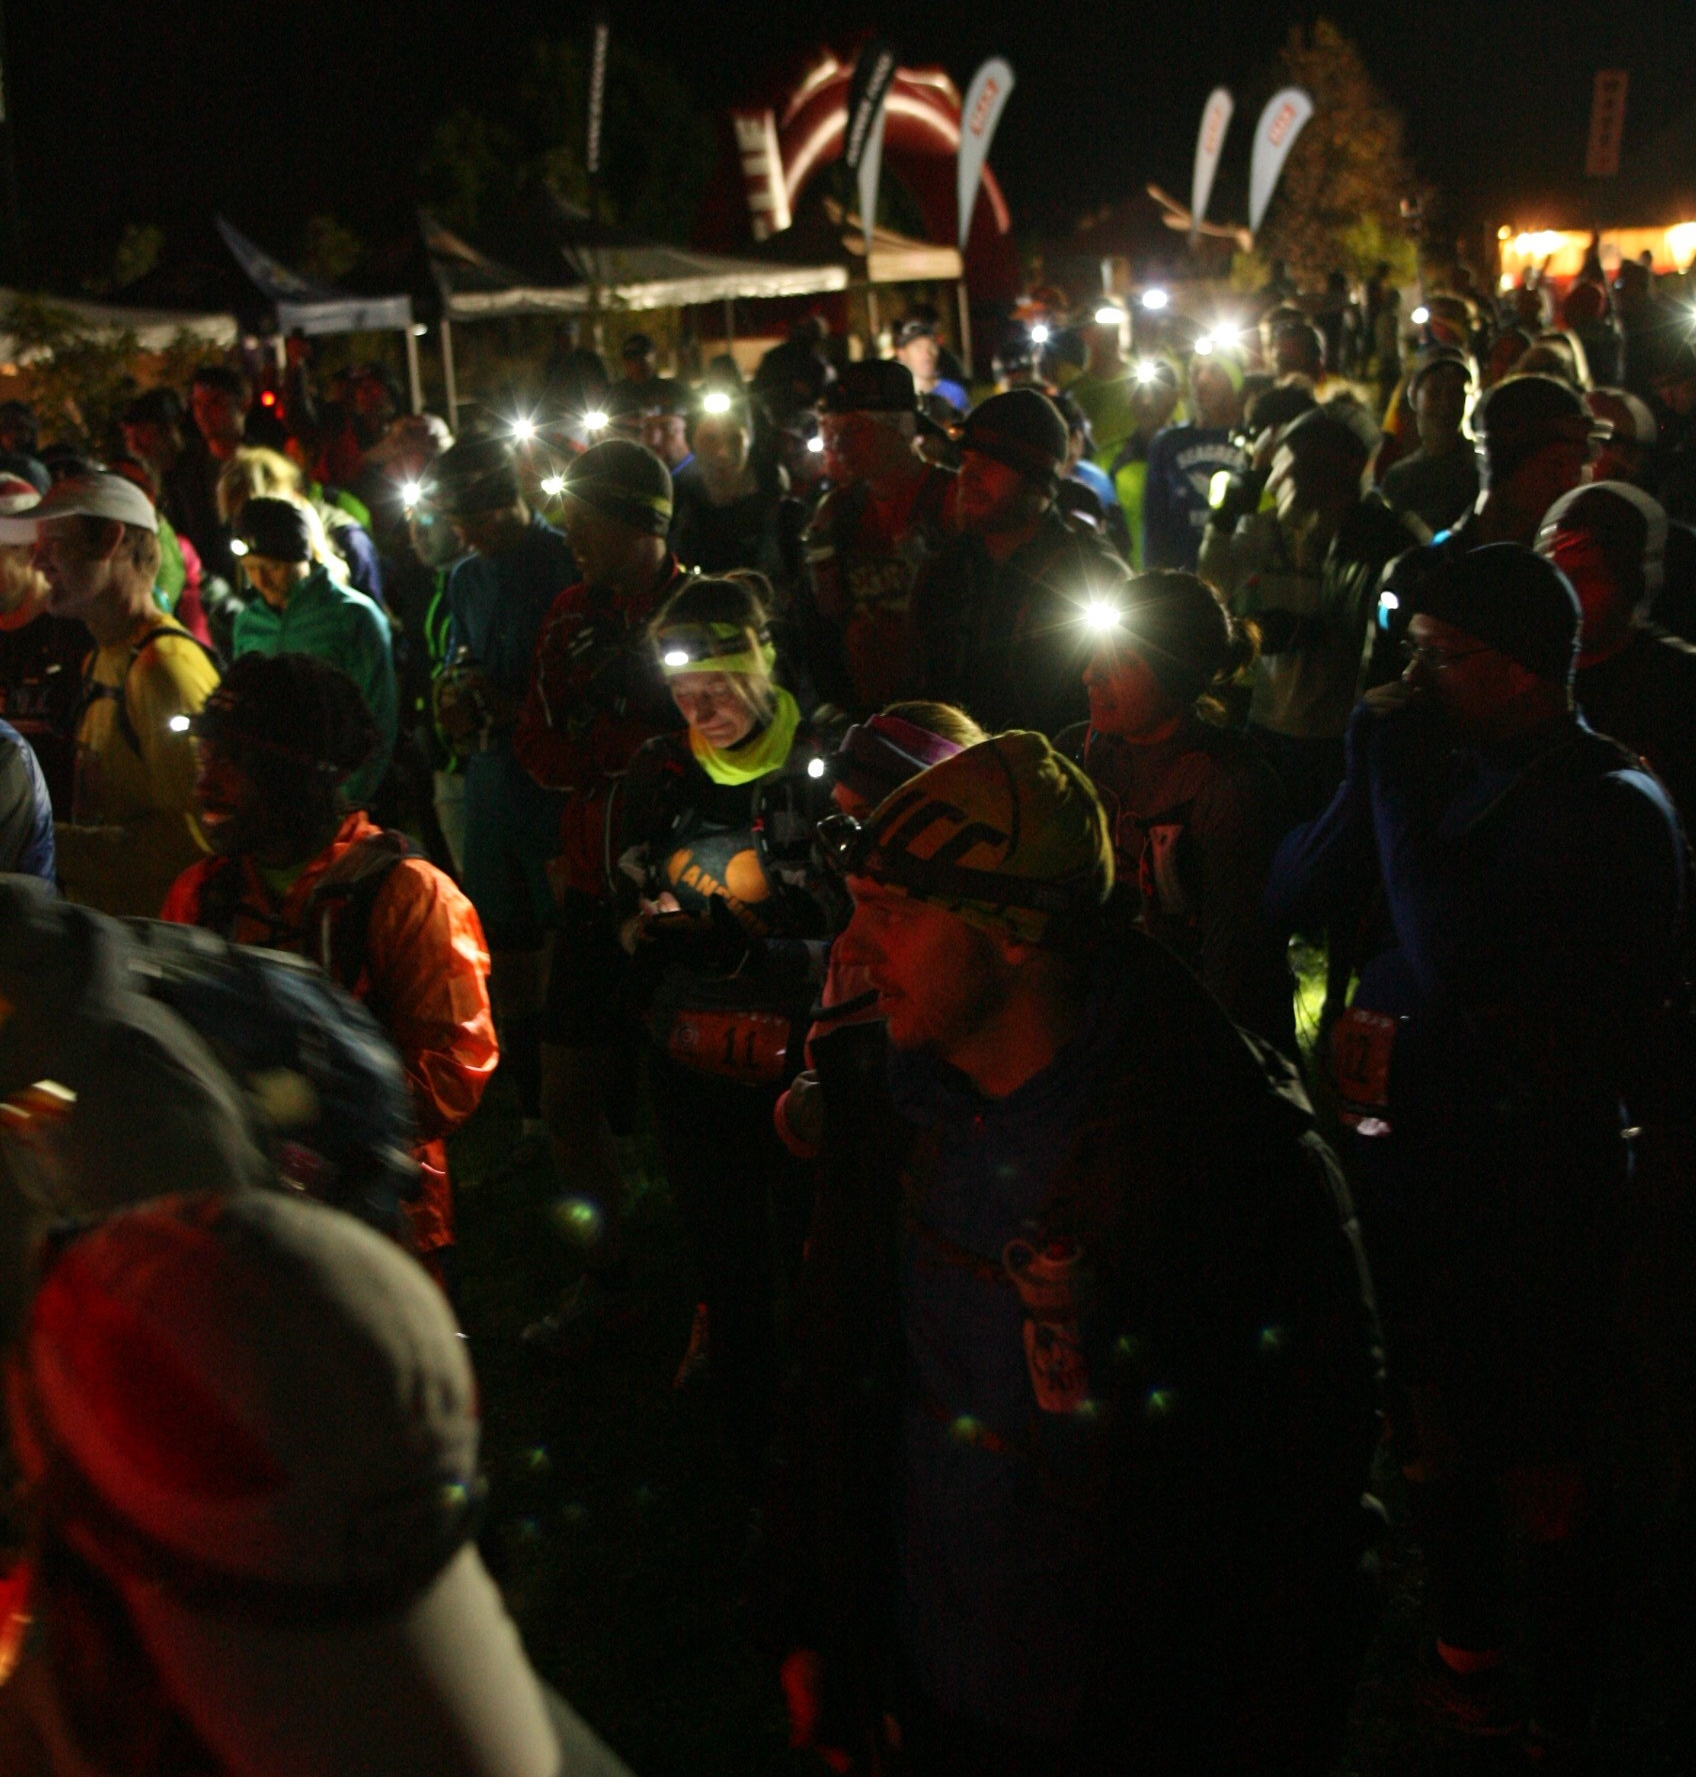 About to run in two hours of darkness at The North Face Endurance Challenge 50 mile